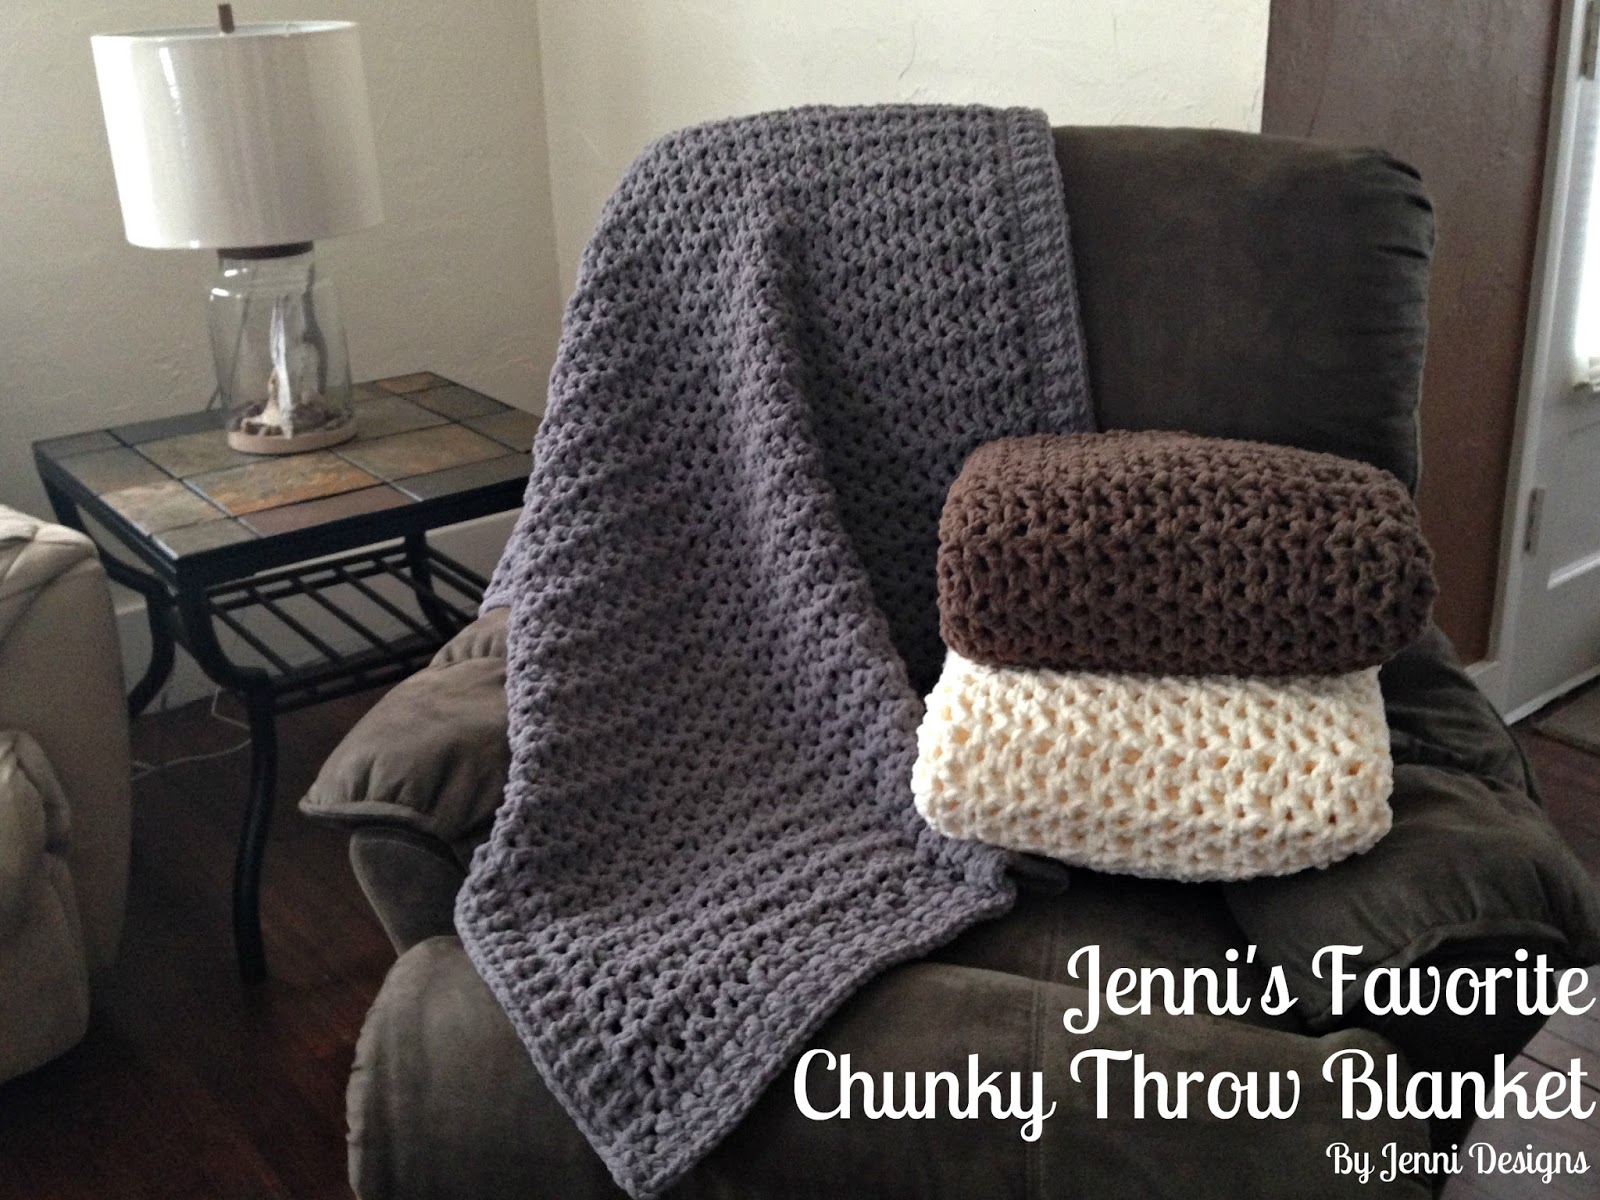 Bernat Blanket Yarn Crochet Patterns Simple Design